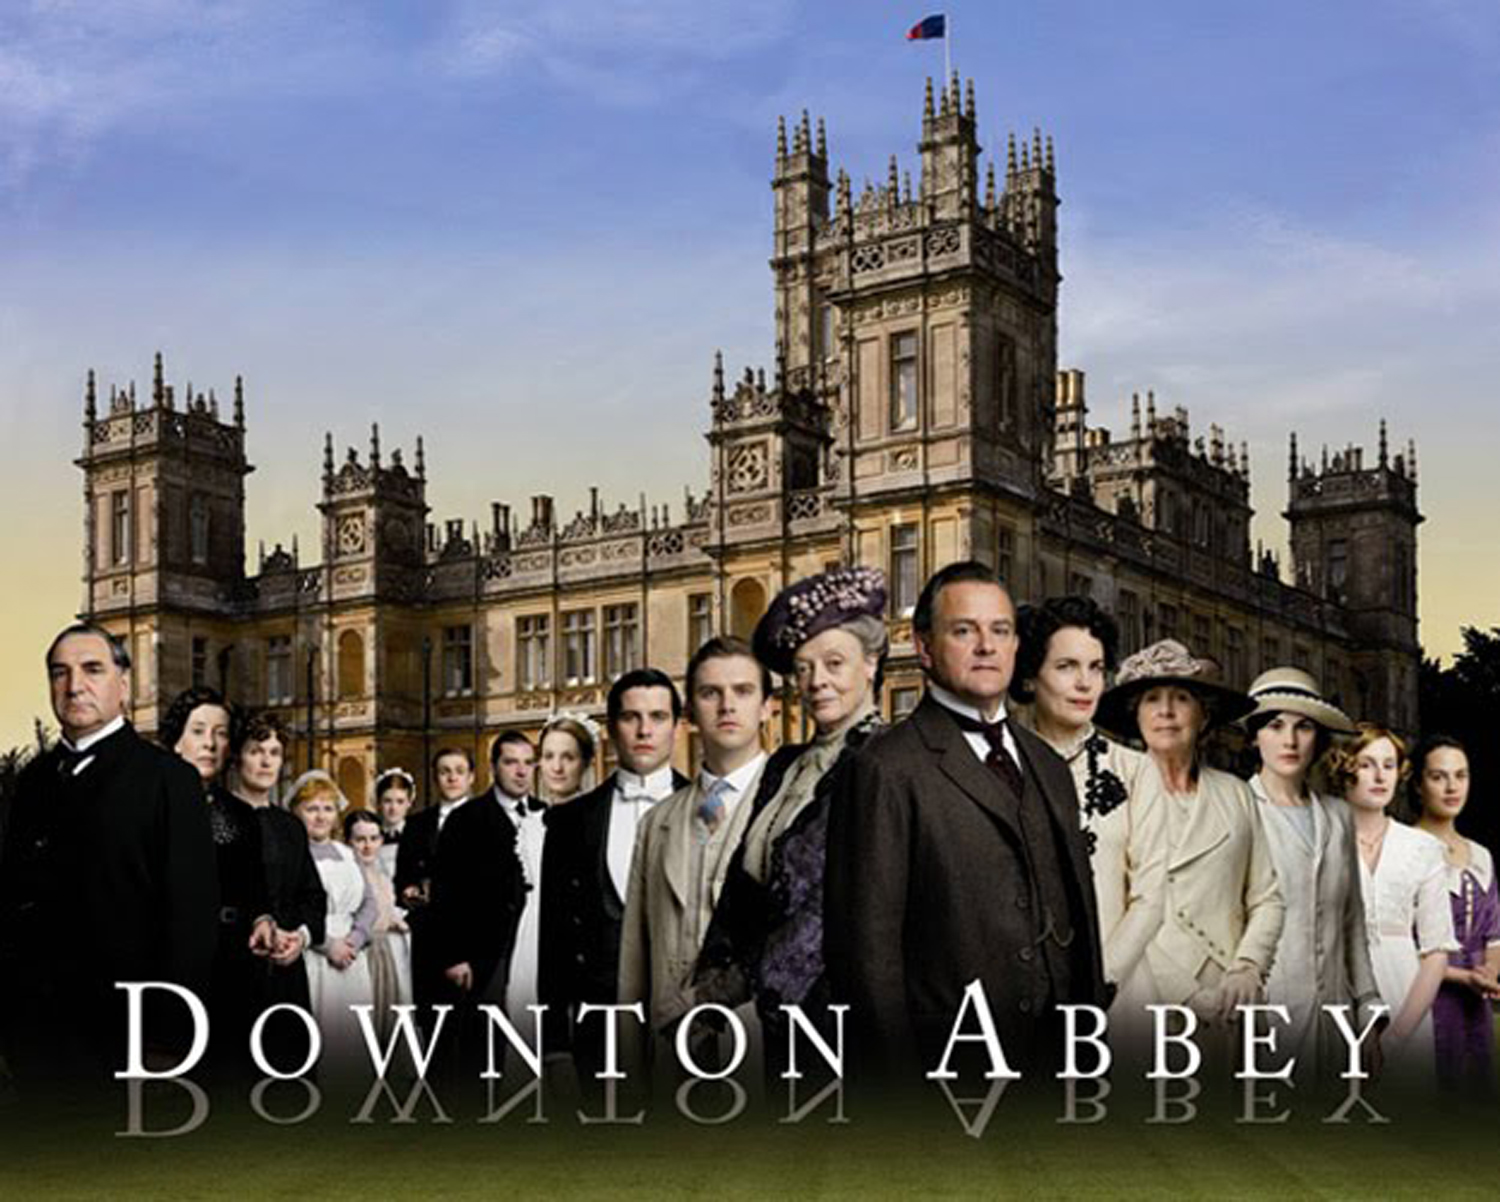 Il fascino british di Downton Abbey